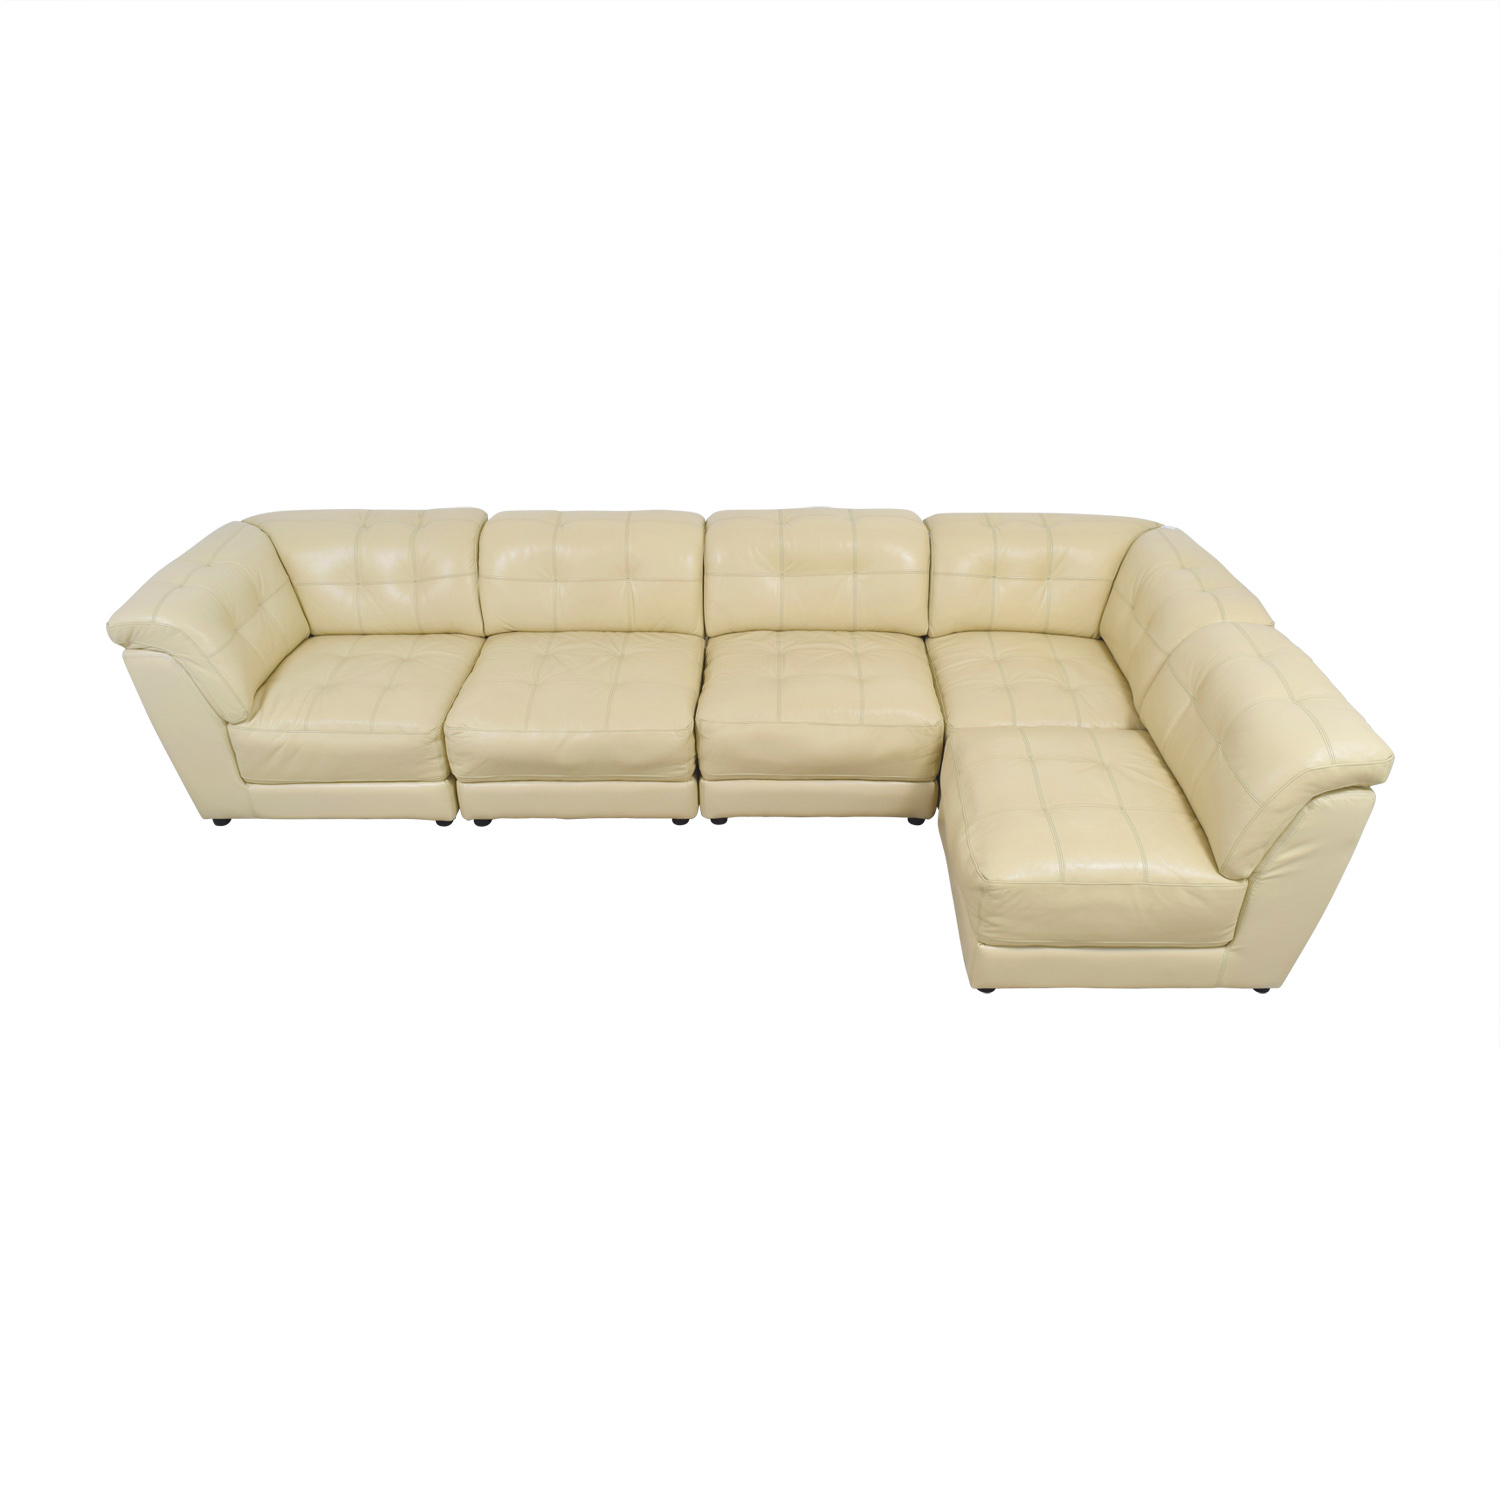 Raymour & Flannigan Raymour & Flannigan White Leather  Sectional nj